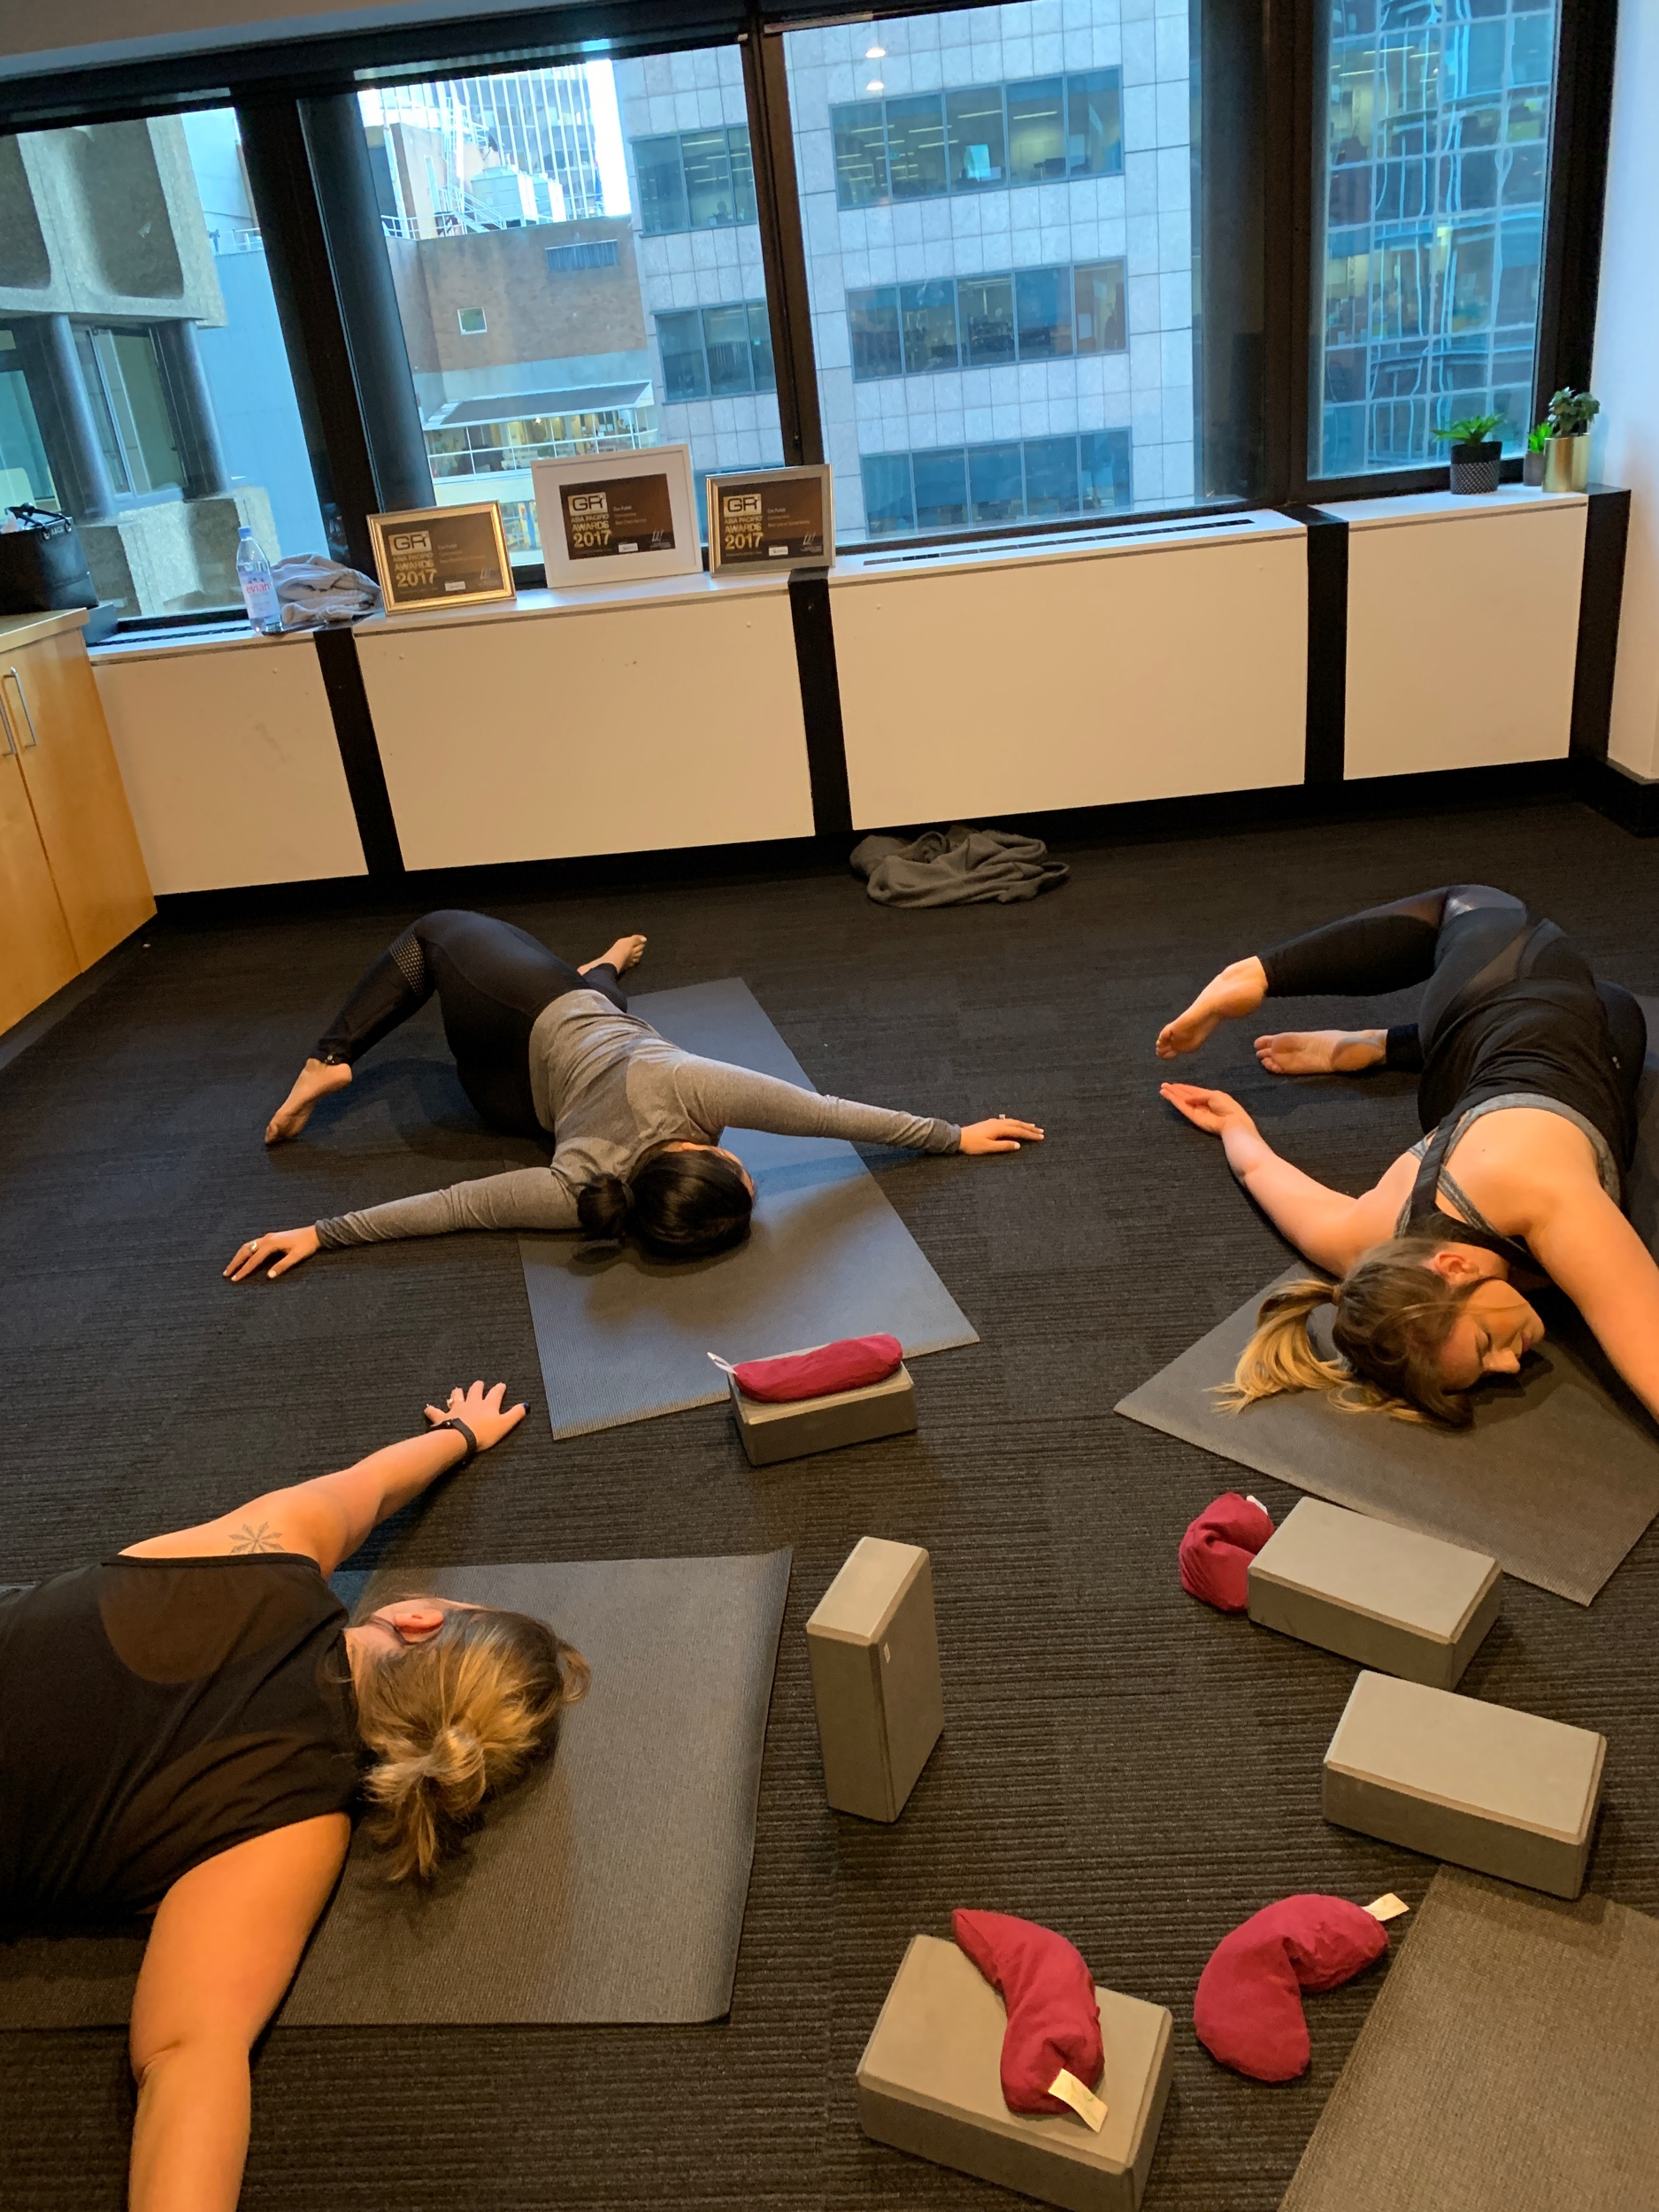 Office yoga - gentle supine twist